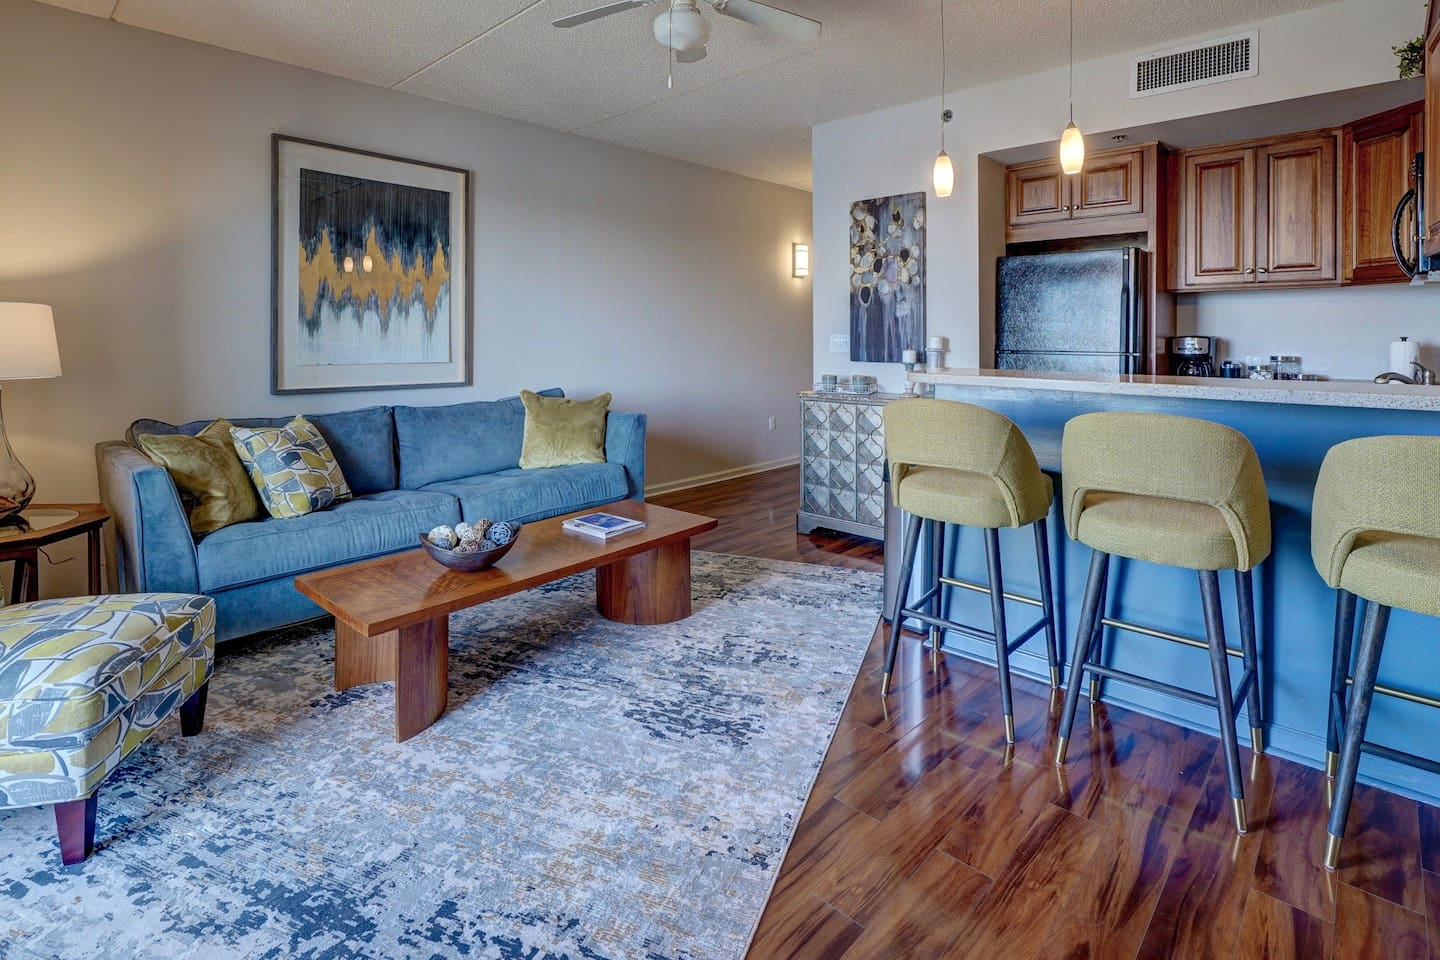 Luxury accommodations in the heart of Historic Downtown Wilmington!